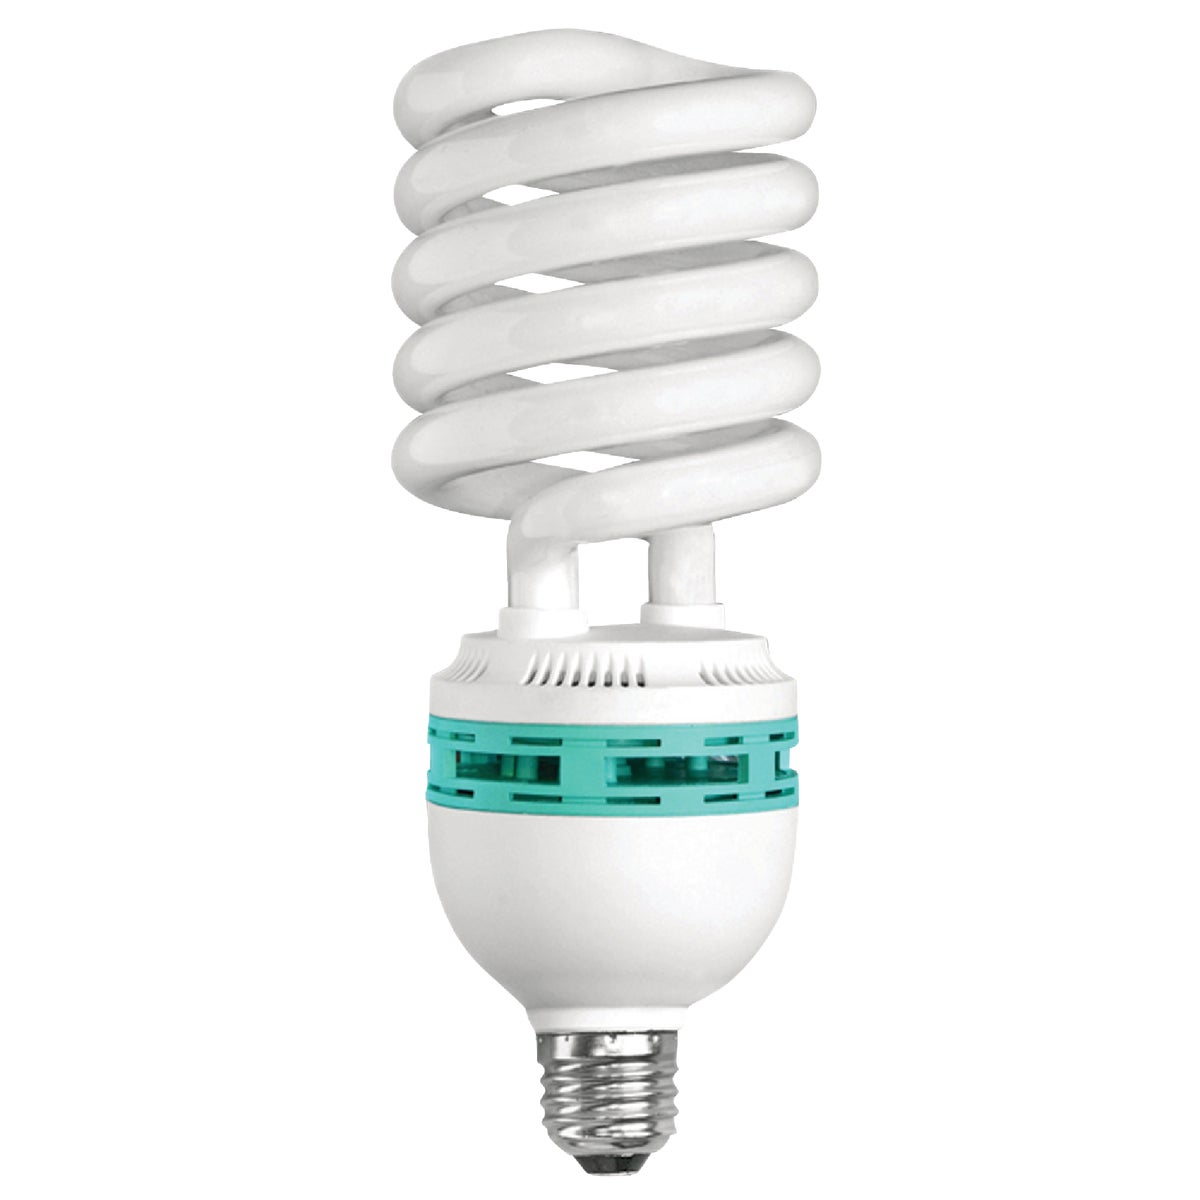 85W CFL REPLACEMENT BULB - WL62260 by Wobble Light